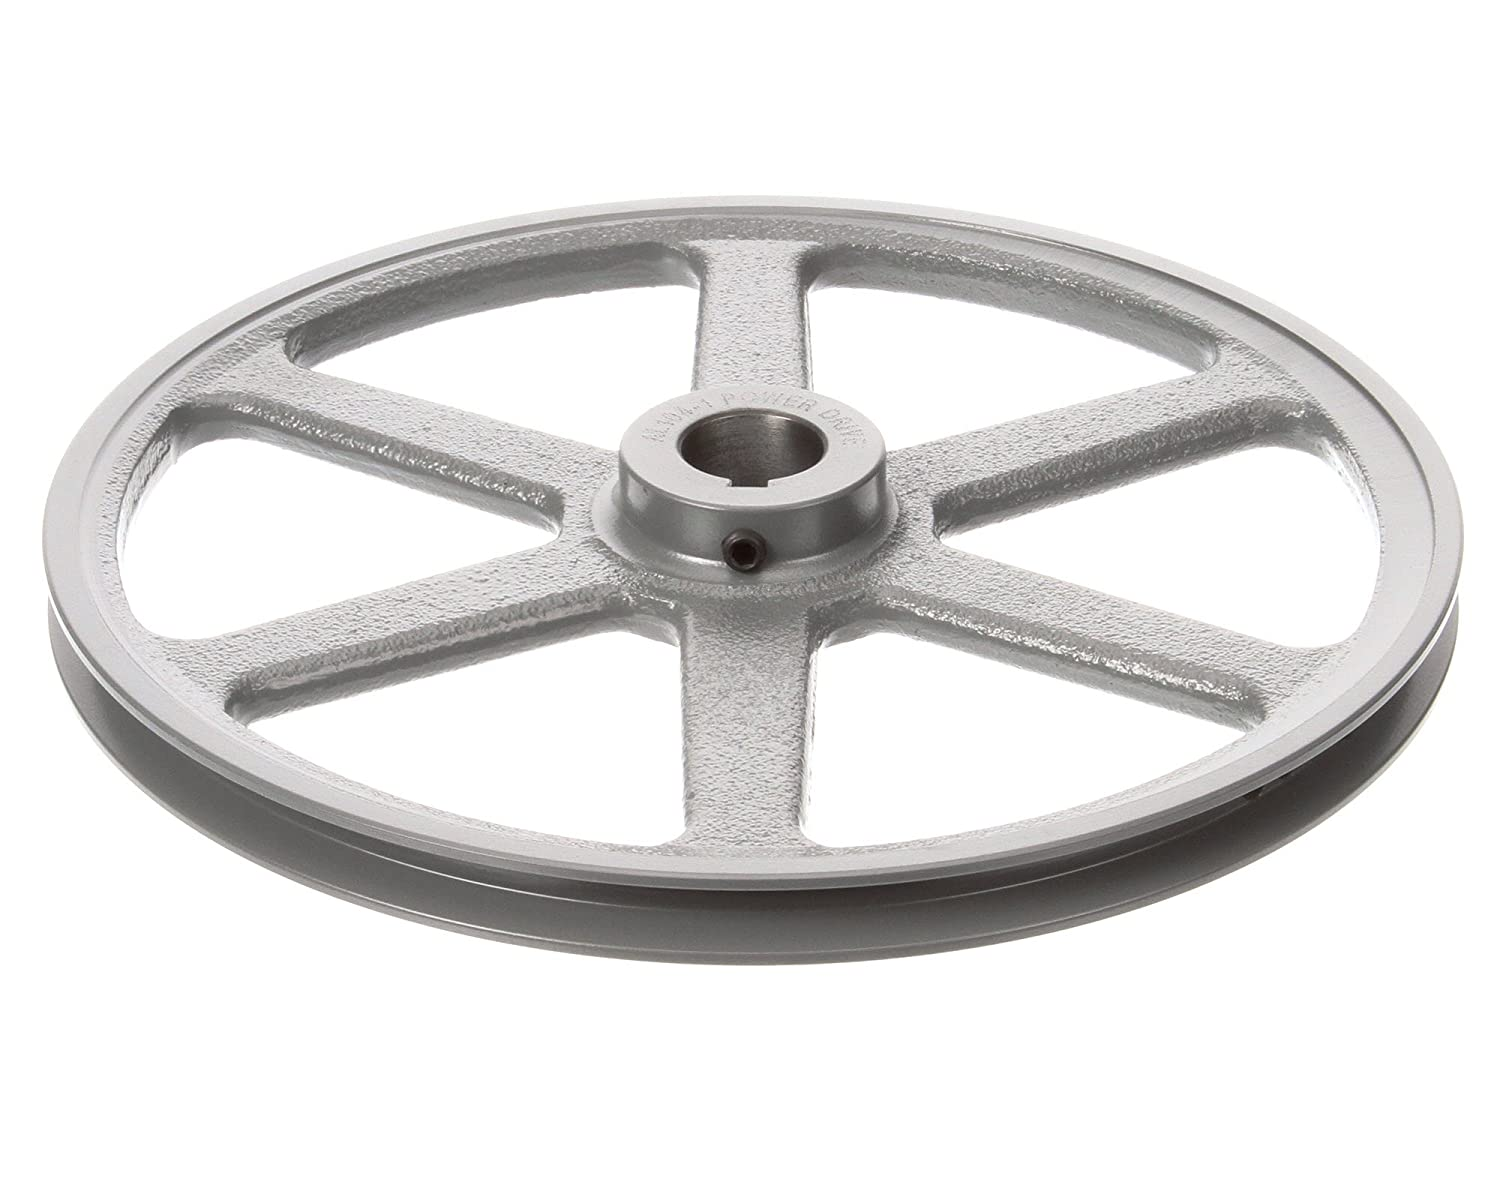 Grindmaster Cecilware W0450053 Pulley 10 with 1 Bore